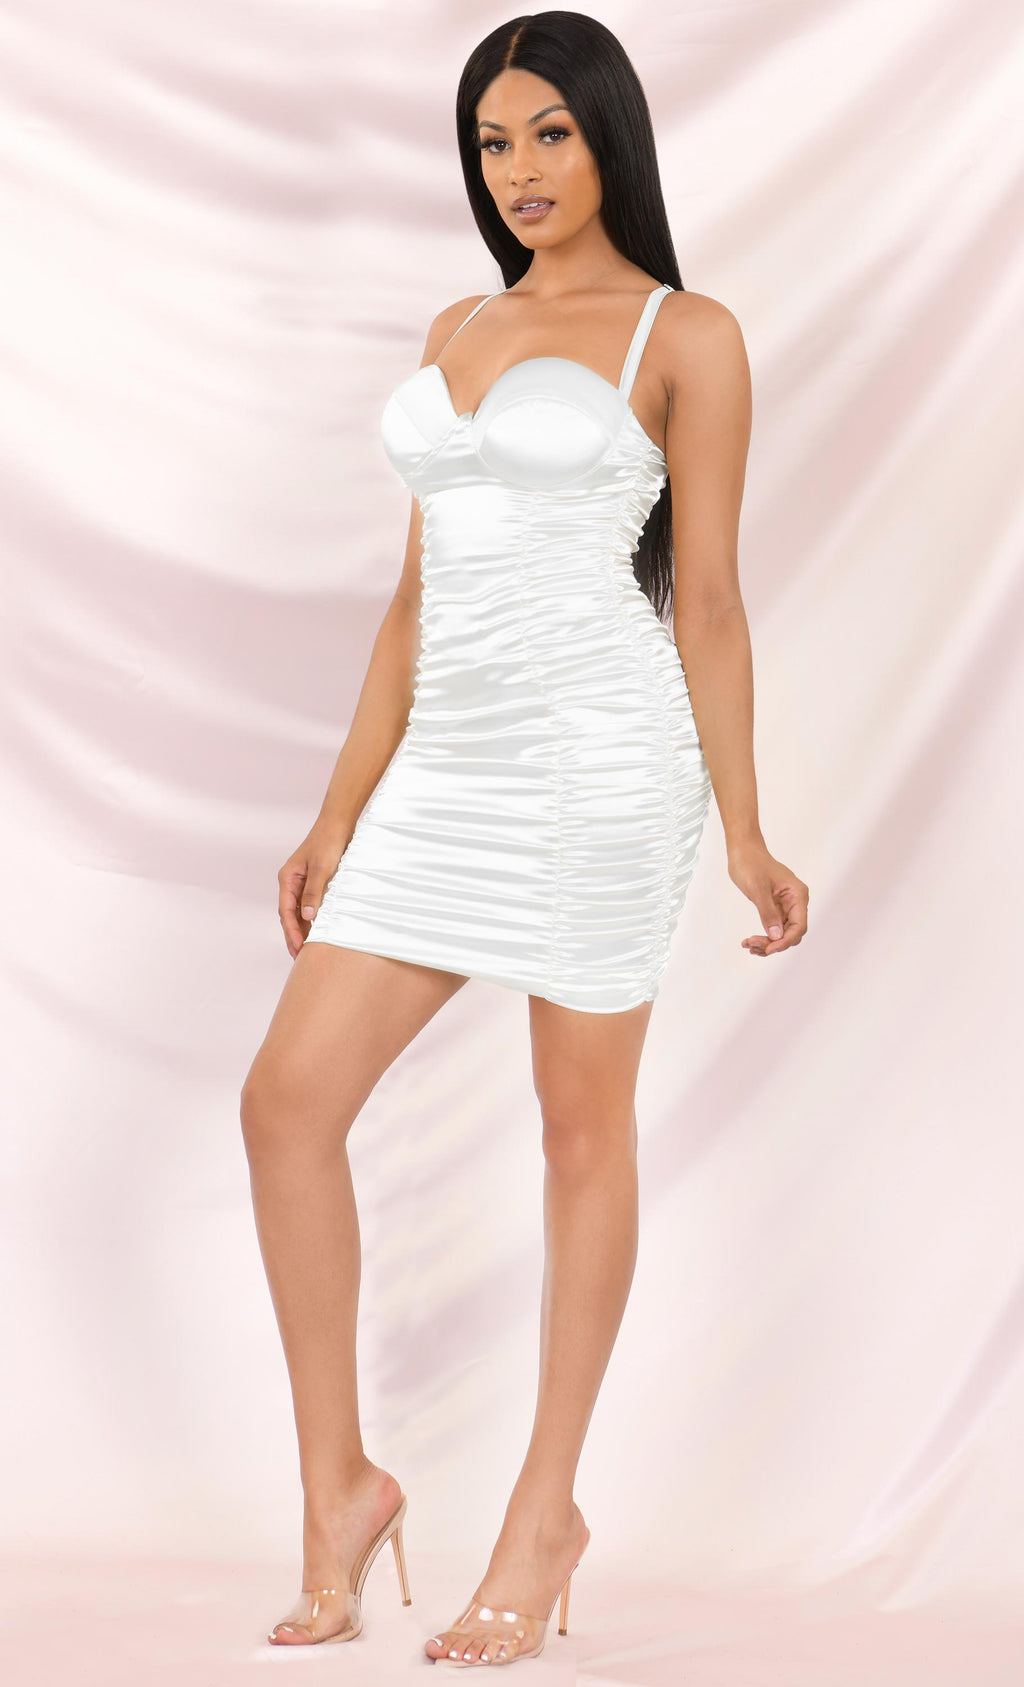 IG Stunna White Satin Bustier Sleeveless Spaghetti Strap Sweetheart Neckline Ruched Bodycon Midi Dress - 2 Colors Available